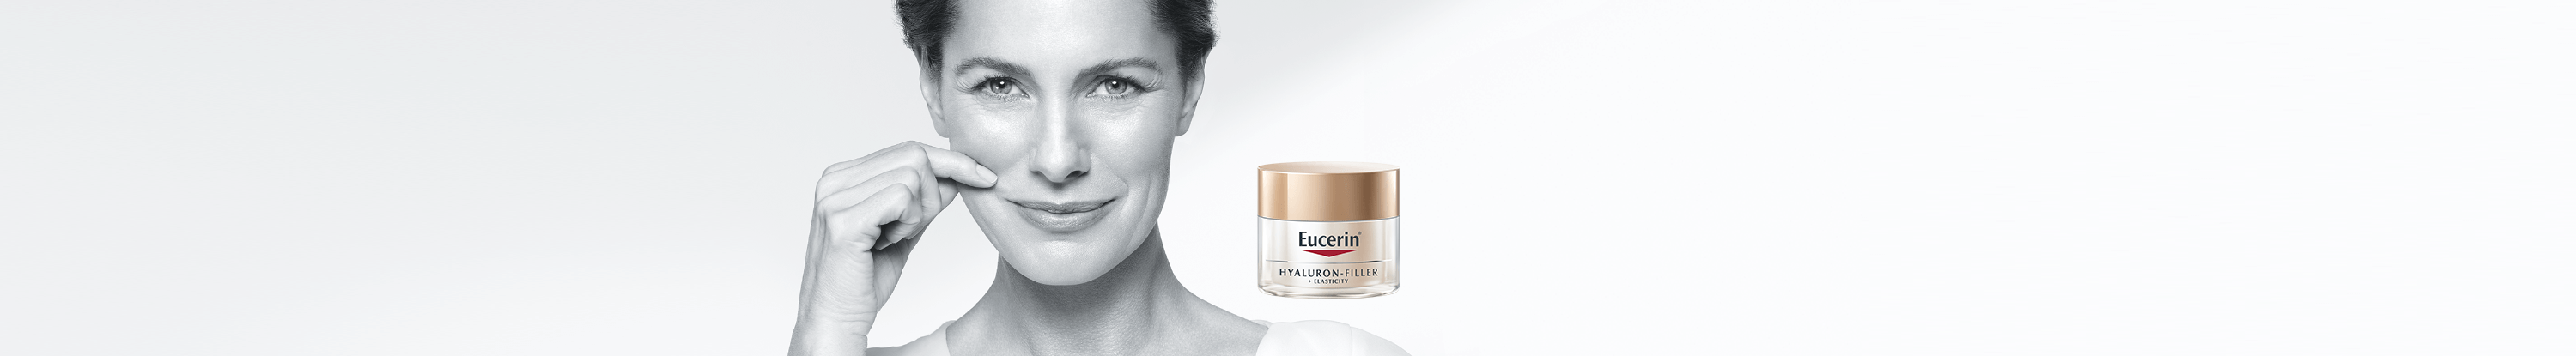 Eucerin elasticity filler for deep wrinkles